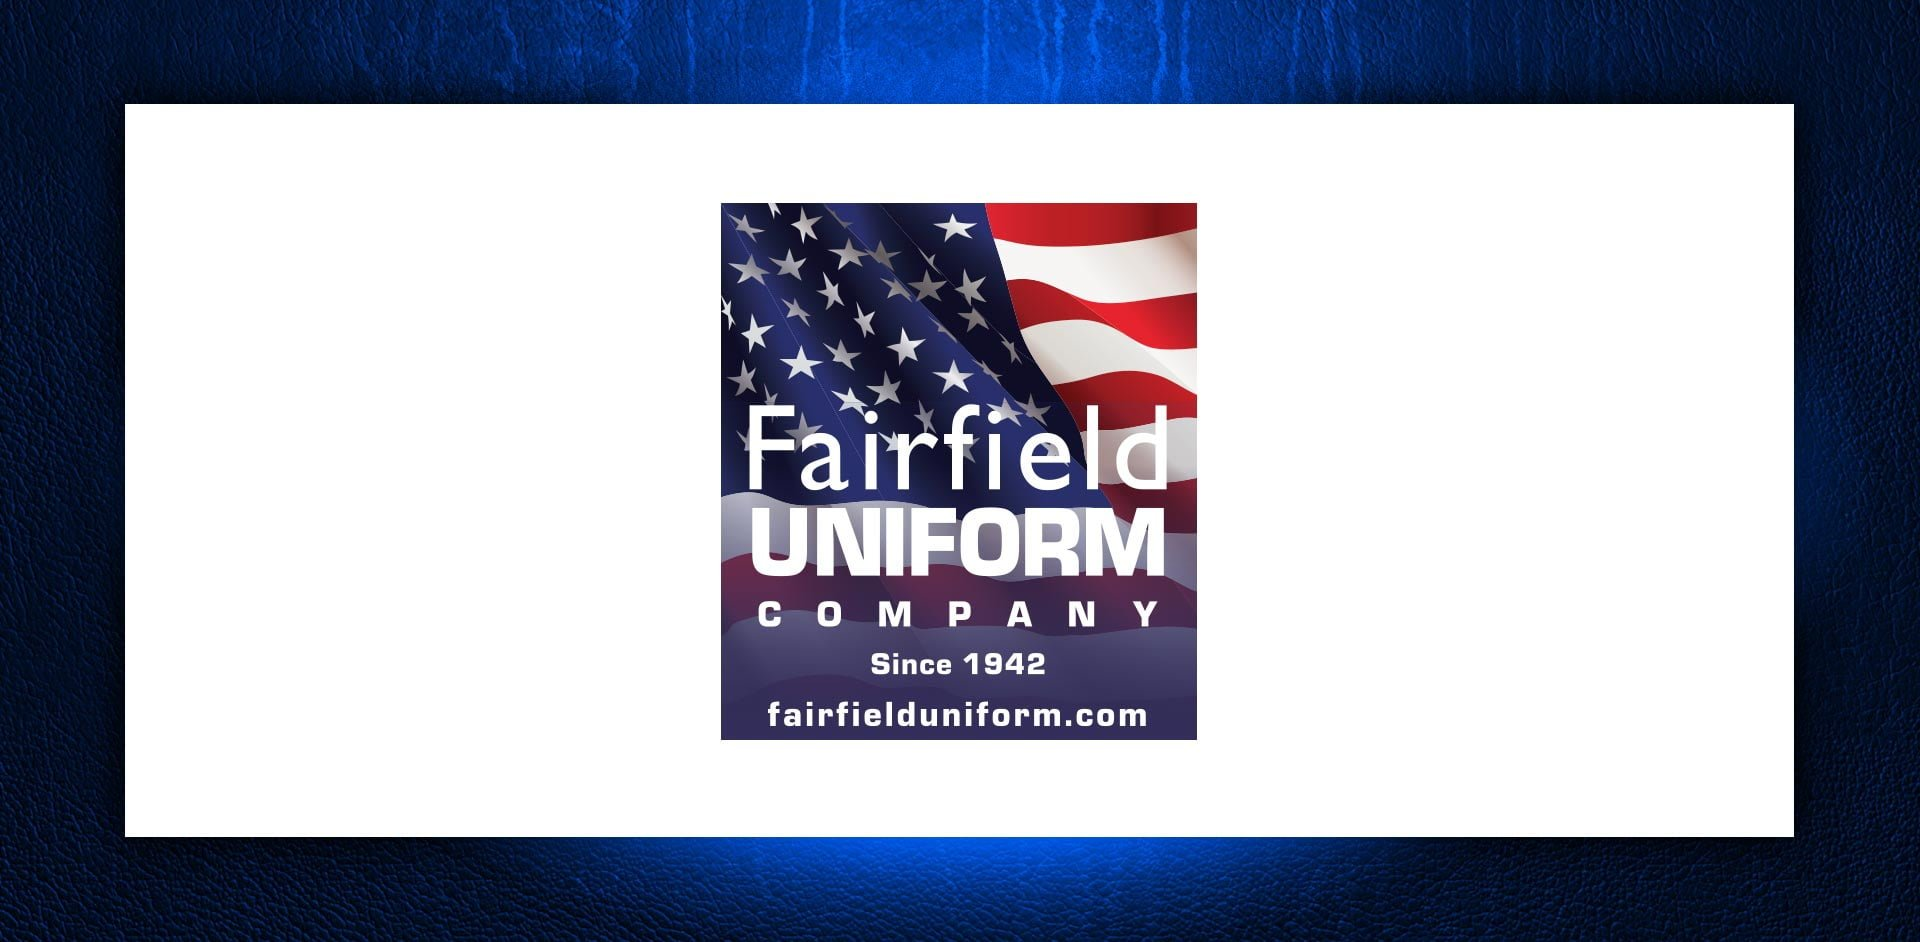 Fairfield Uniform Company